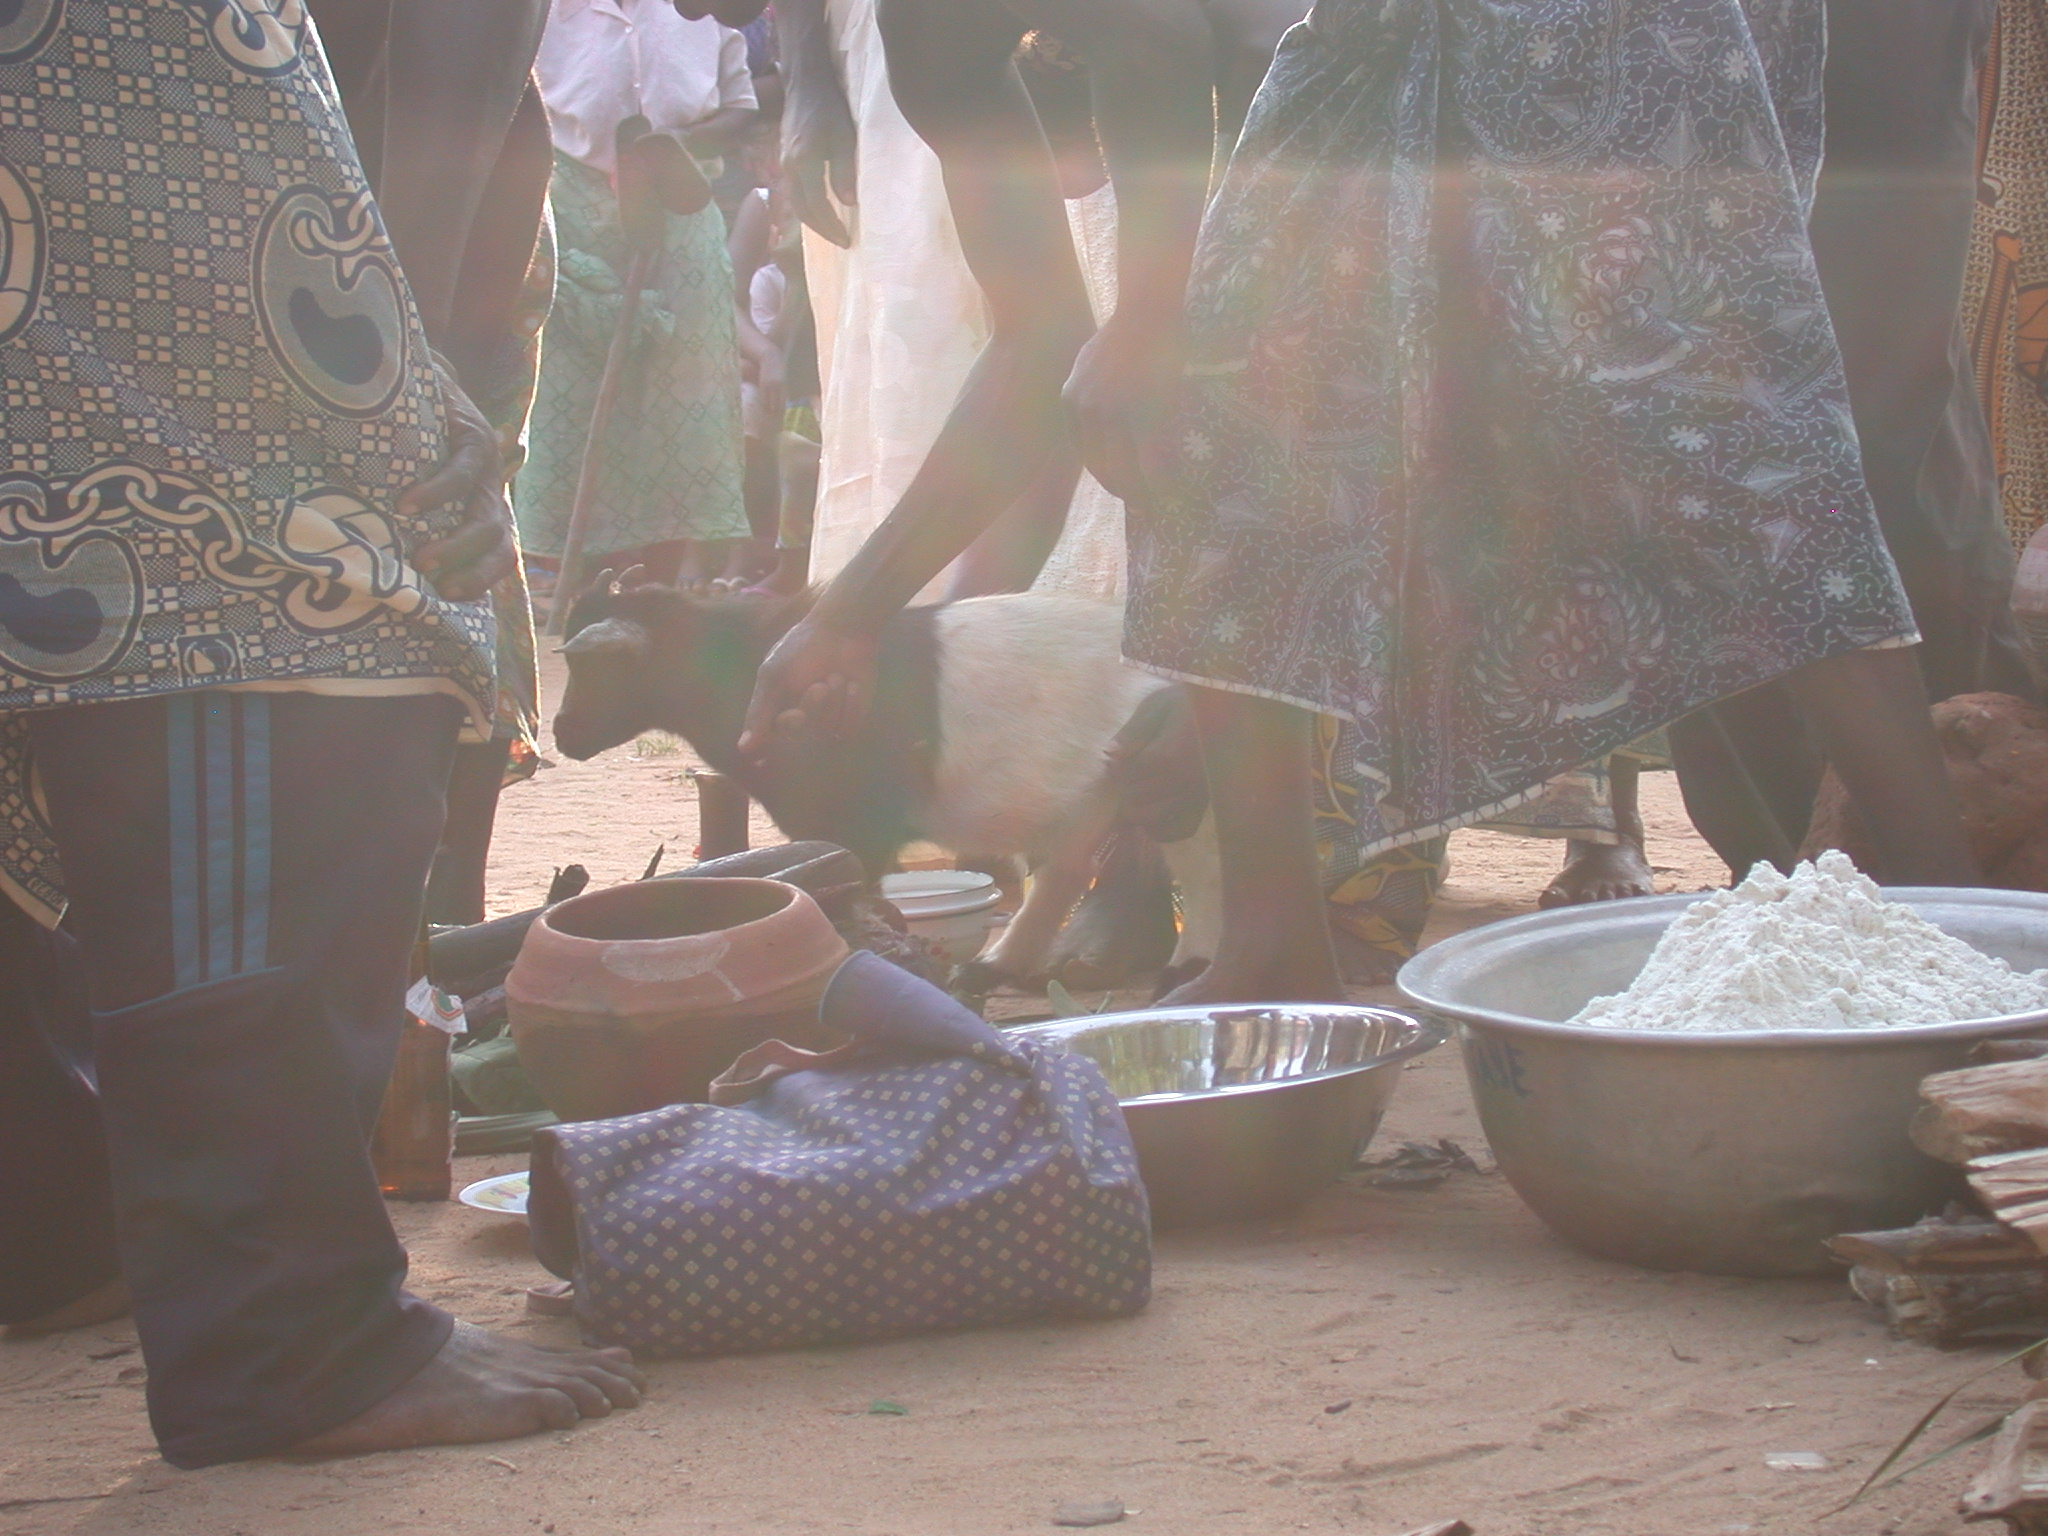 Preparing for Sacrifice of Goat, Vodun Ritual, Ouidah, Benin